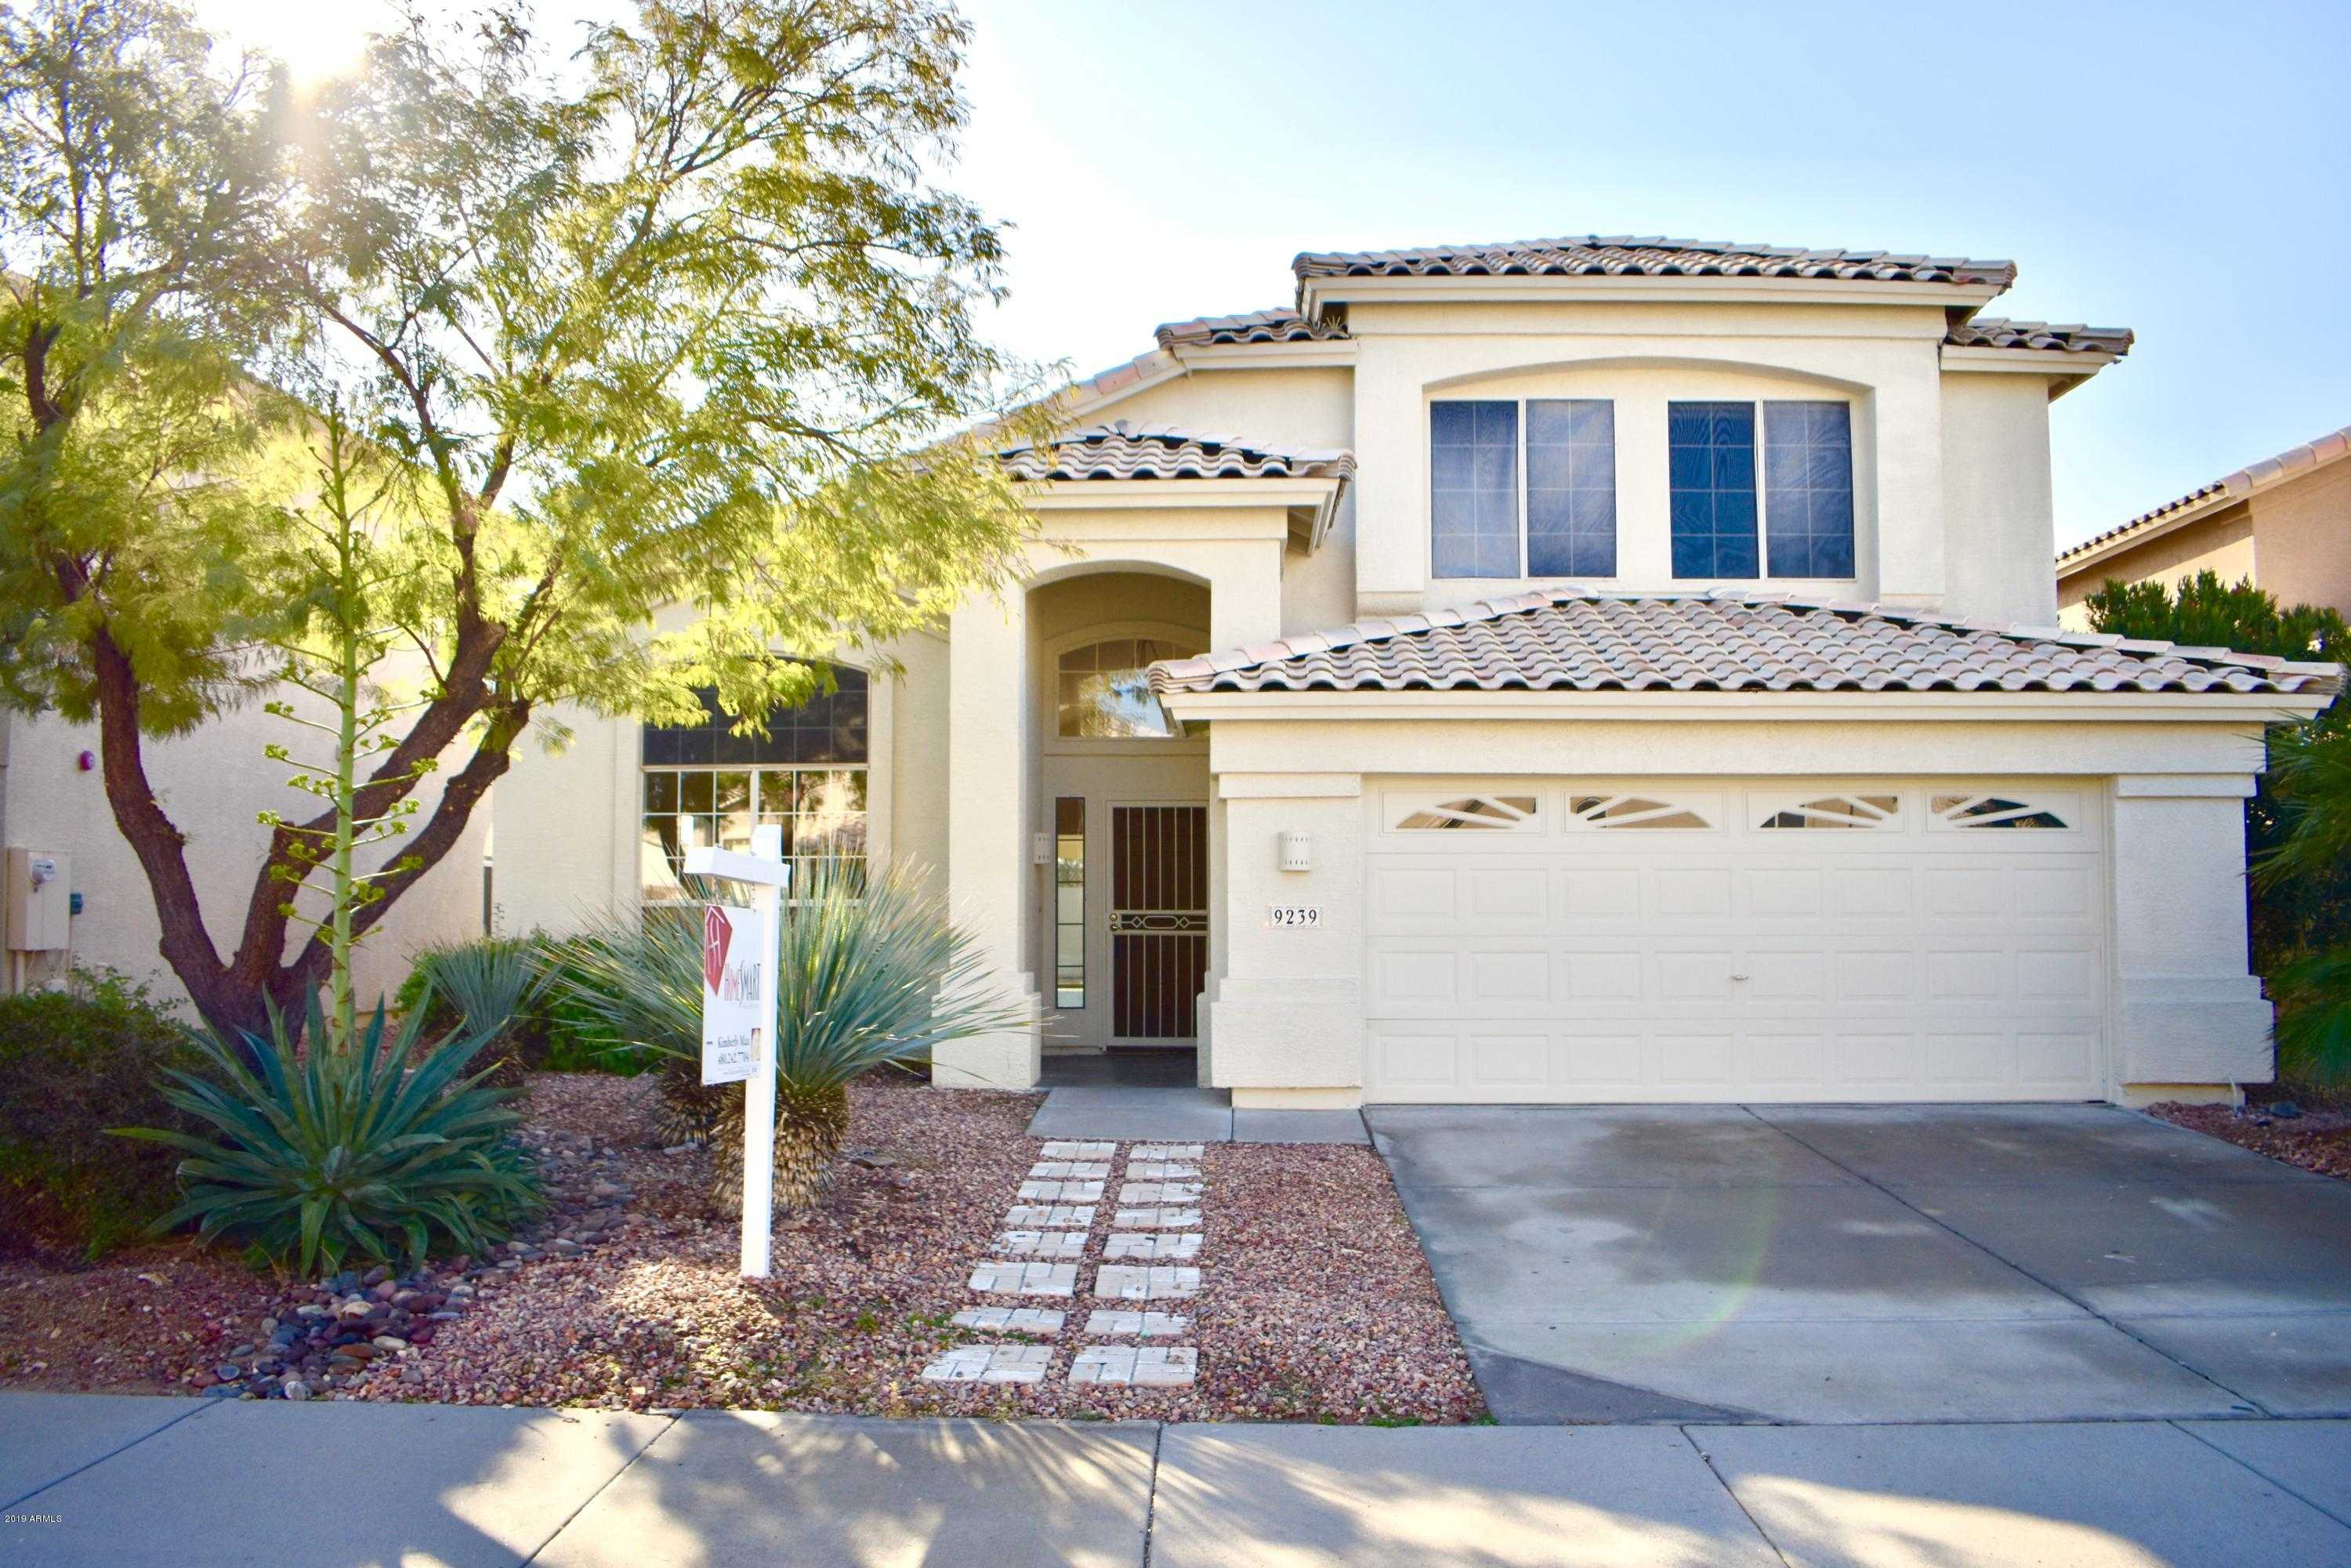 $474,999 - 4Br/3Ba - Home for Sale in Desert Shadows 2 Lot 3-86 Tr A-g, Scottsdale